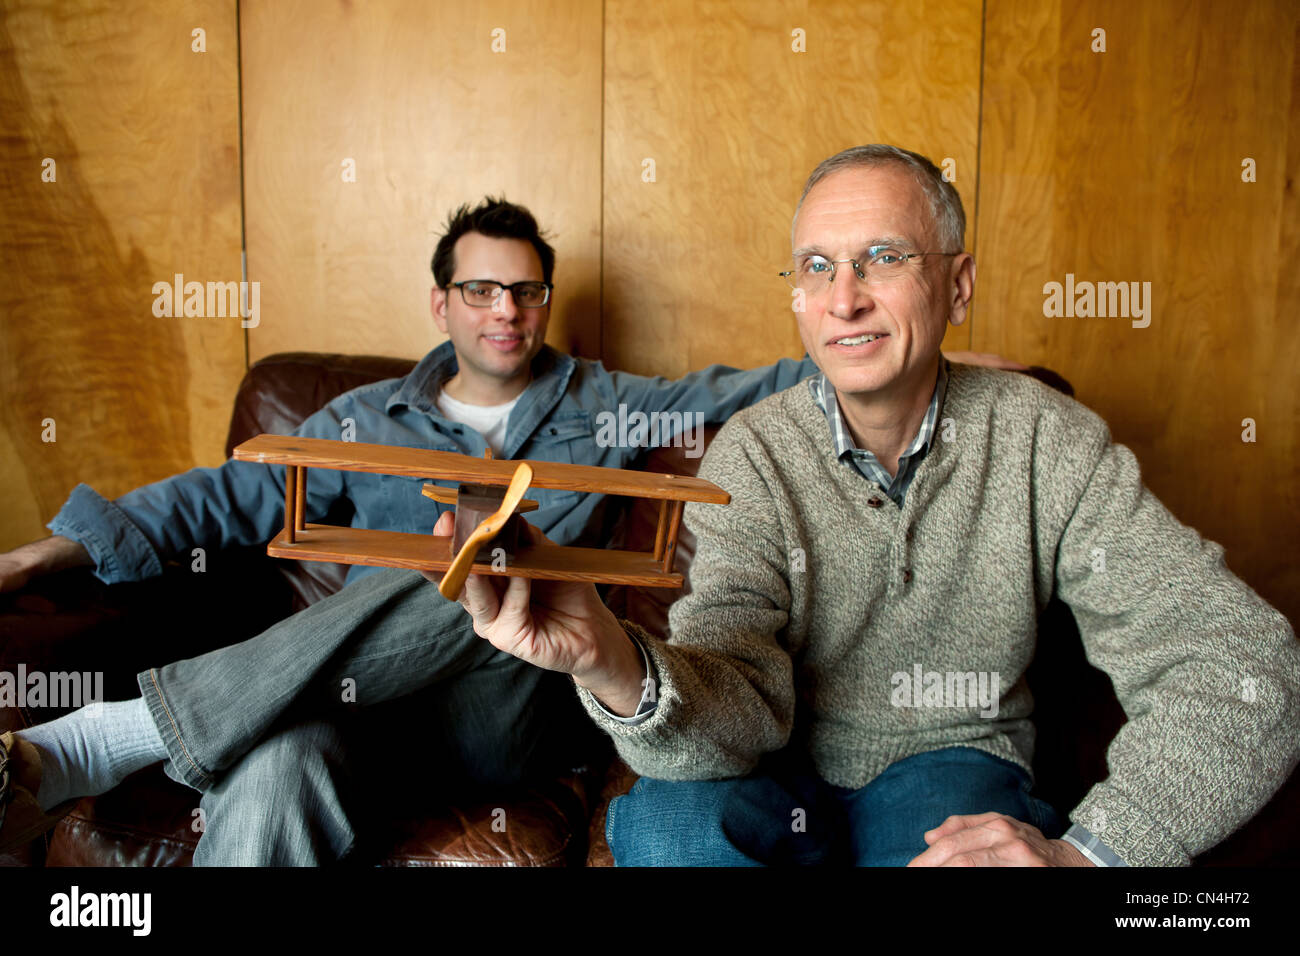 Father holding toy plane with adult son on couch, smiling - Stock Image